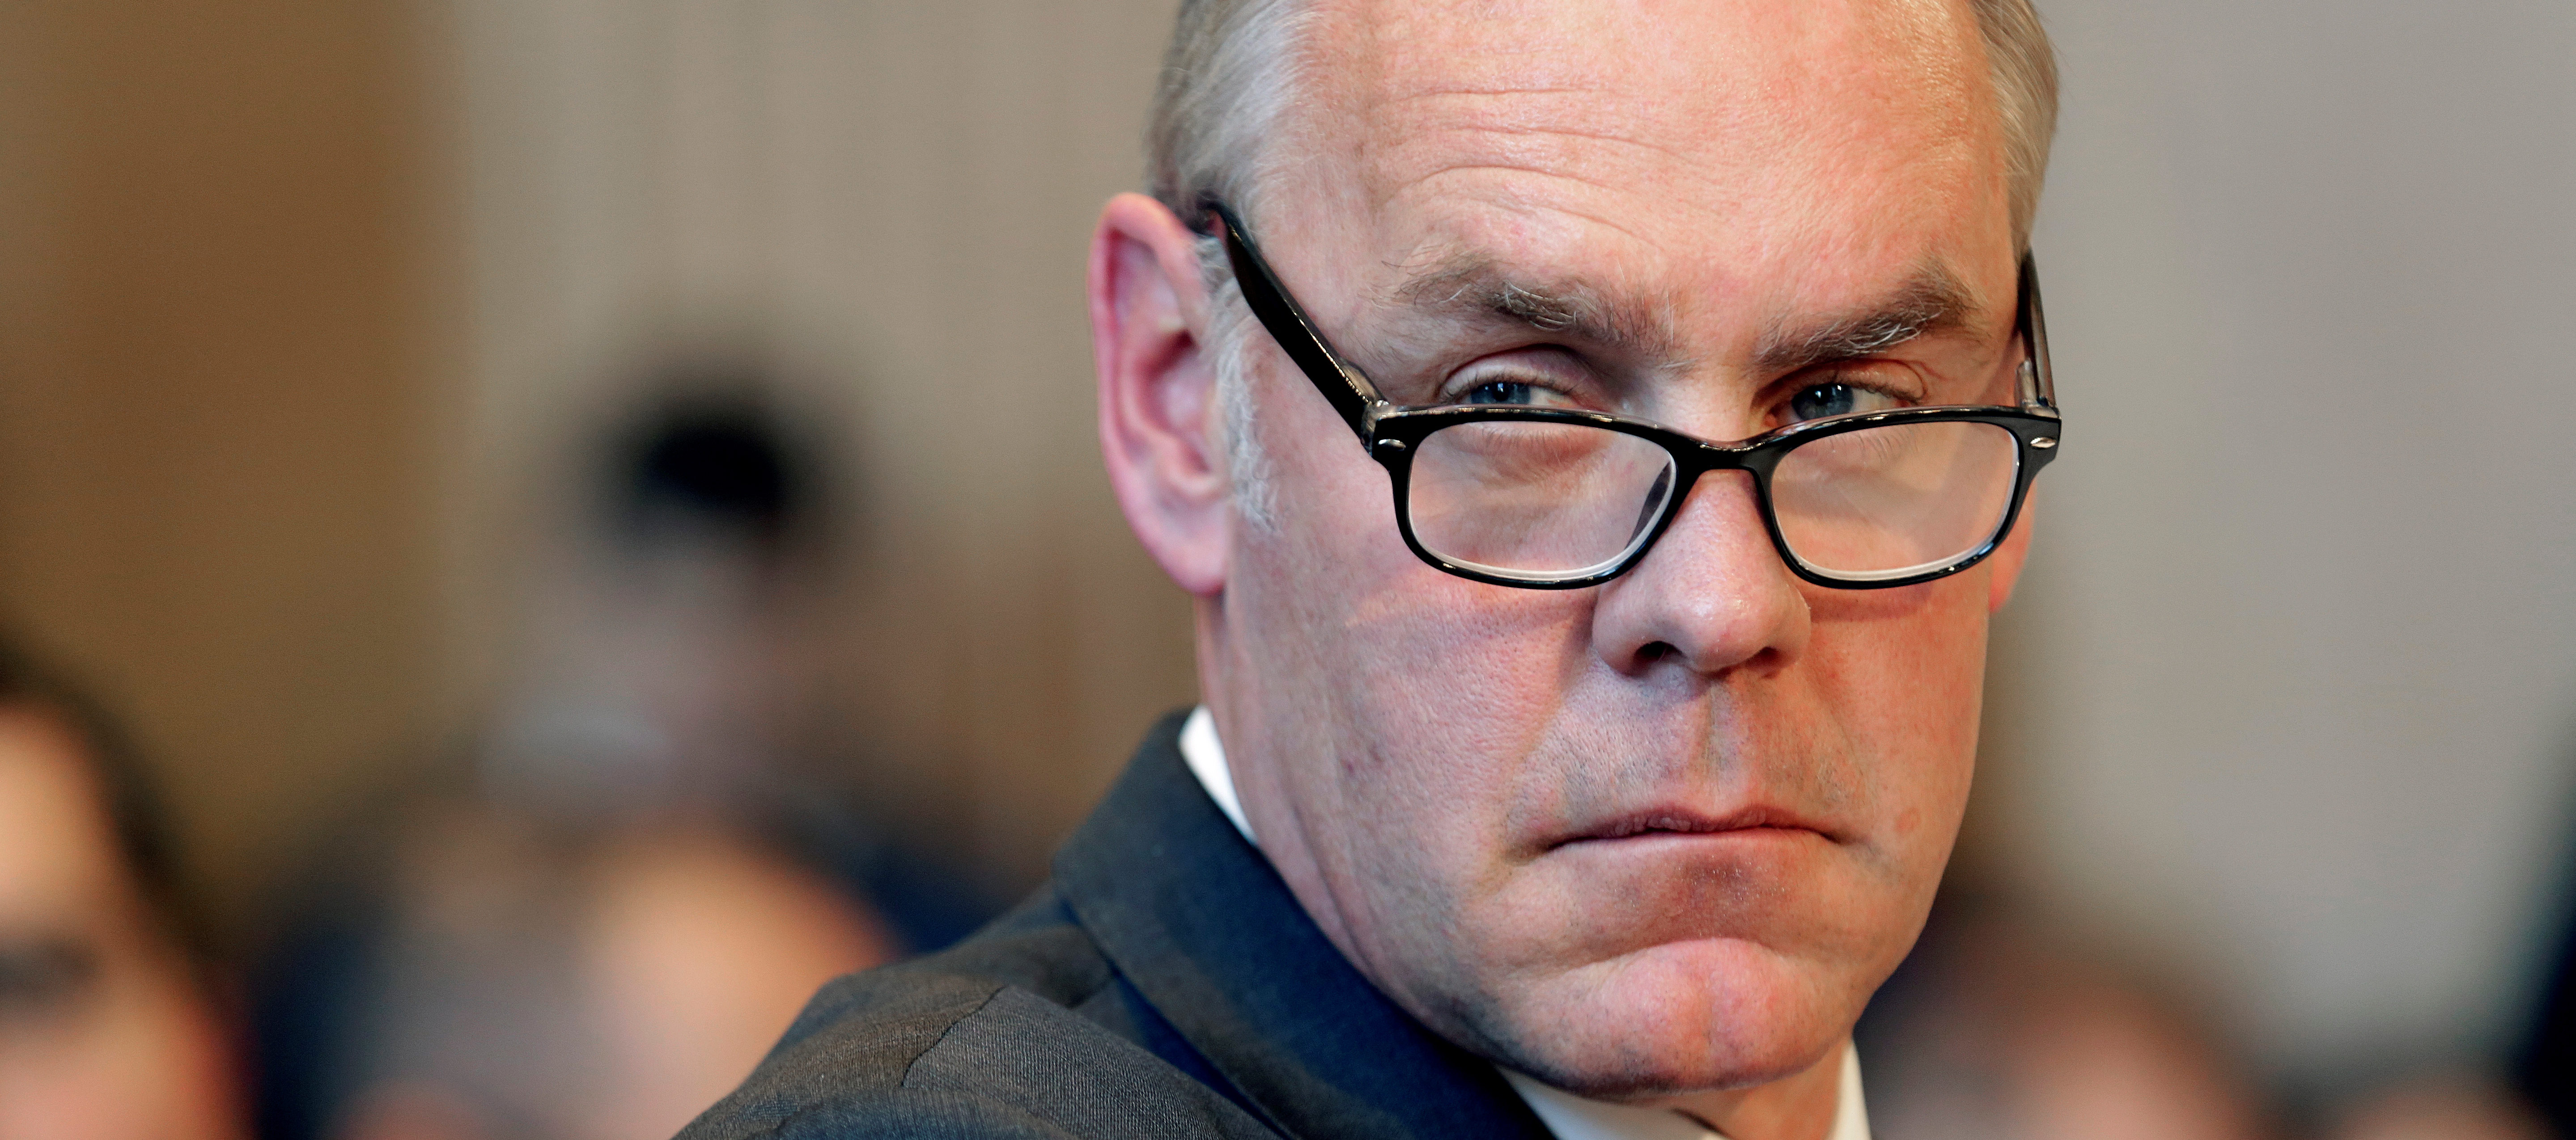 Zinke Takes Heat For Wanting 39 Excellence The Daily Caller